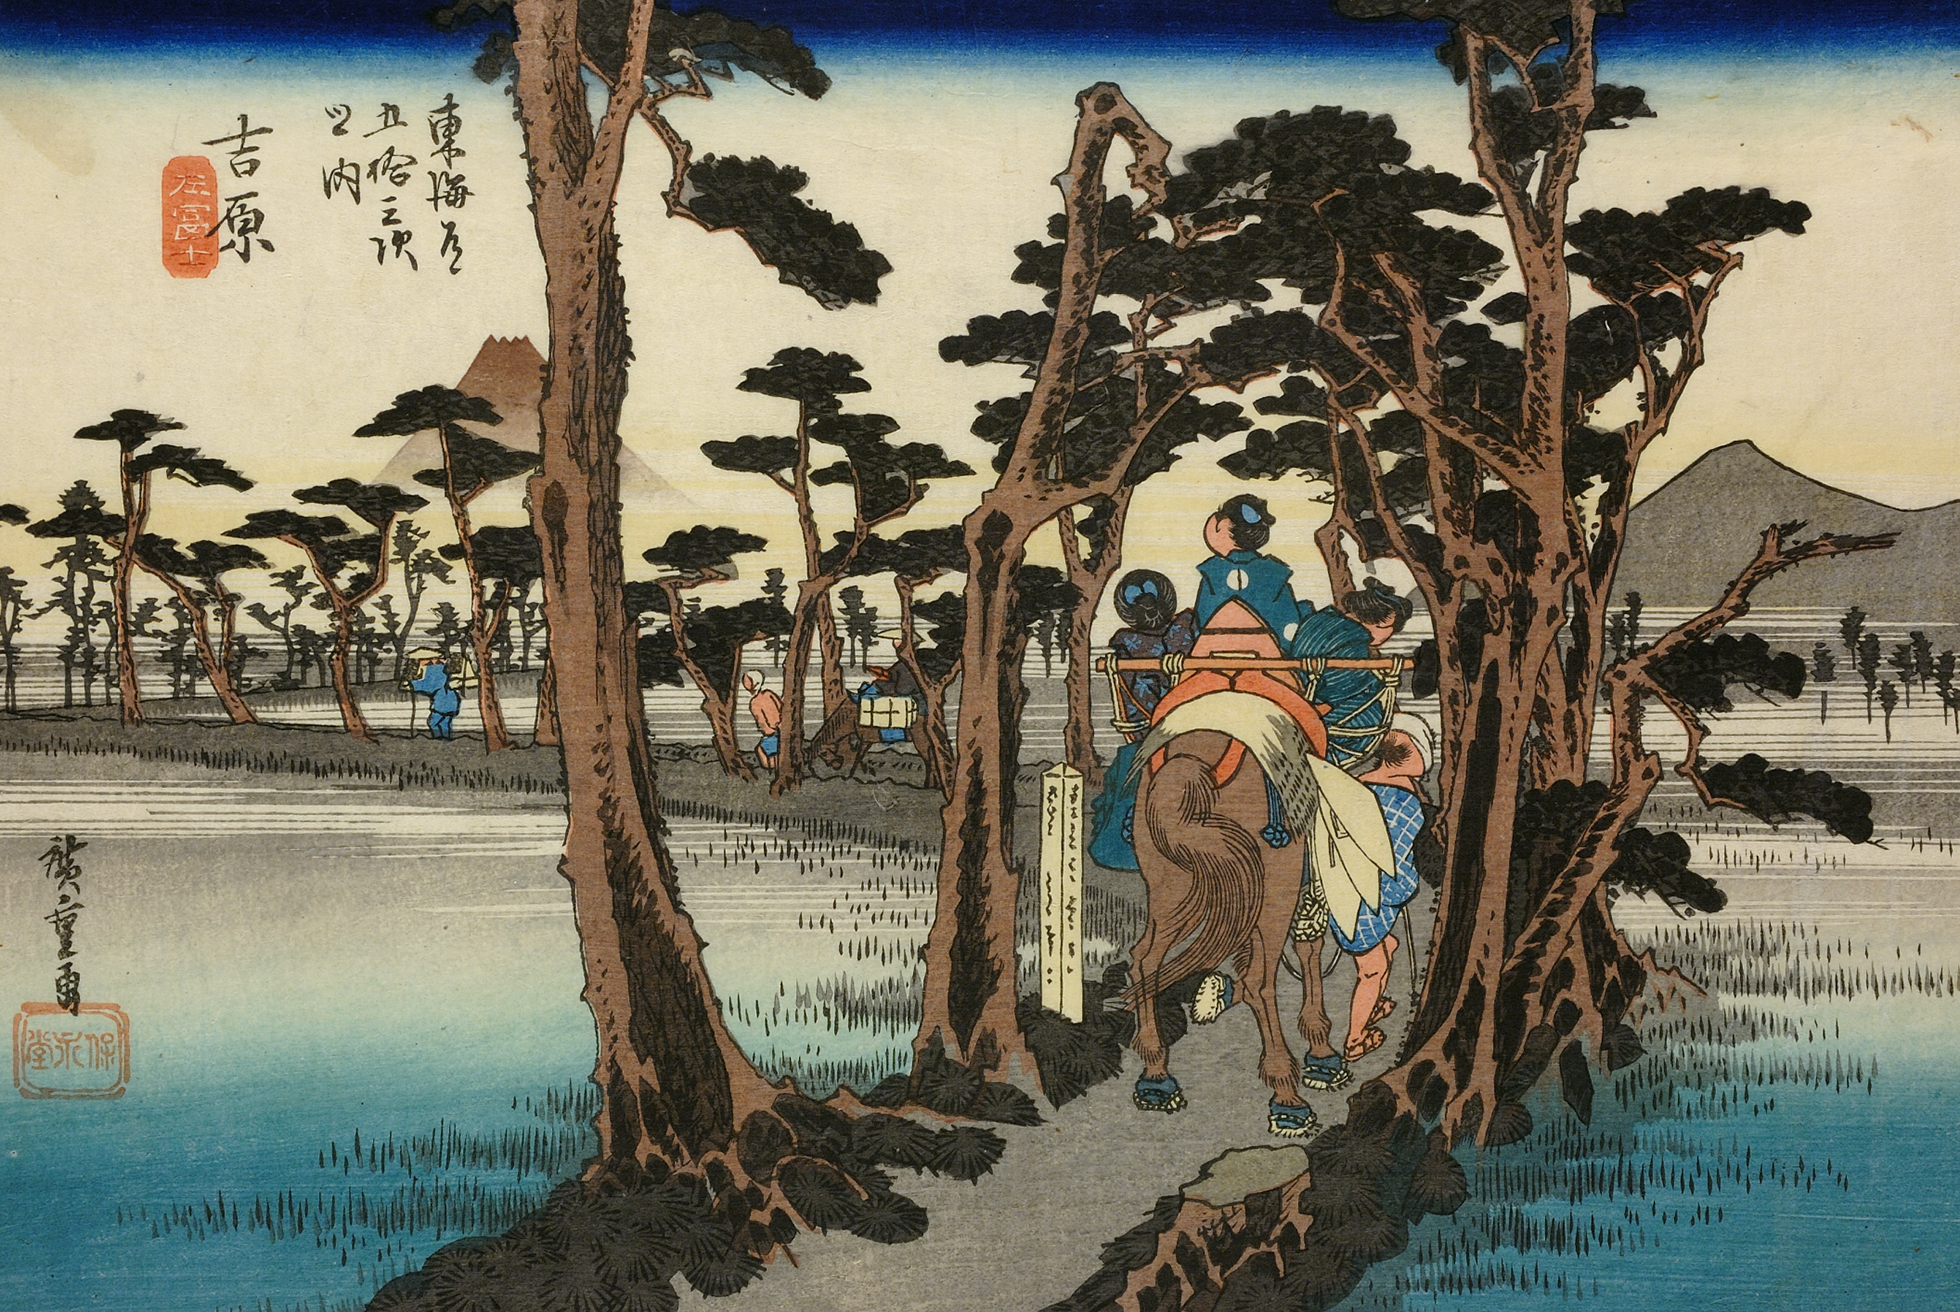 A woodblock print showing pedestrians and horse riders travelling along the Tokaido Highway. Trees line the road, with water either side. Mount Fuji is seen in the background.